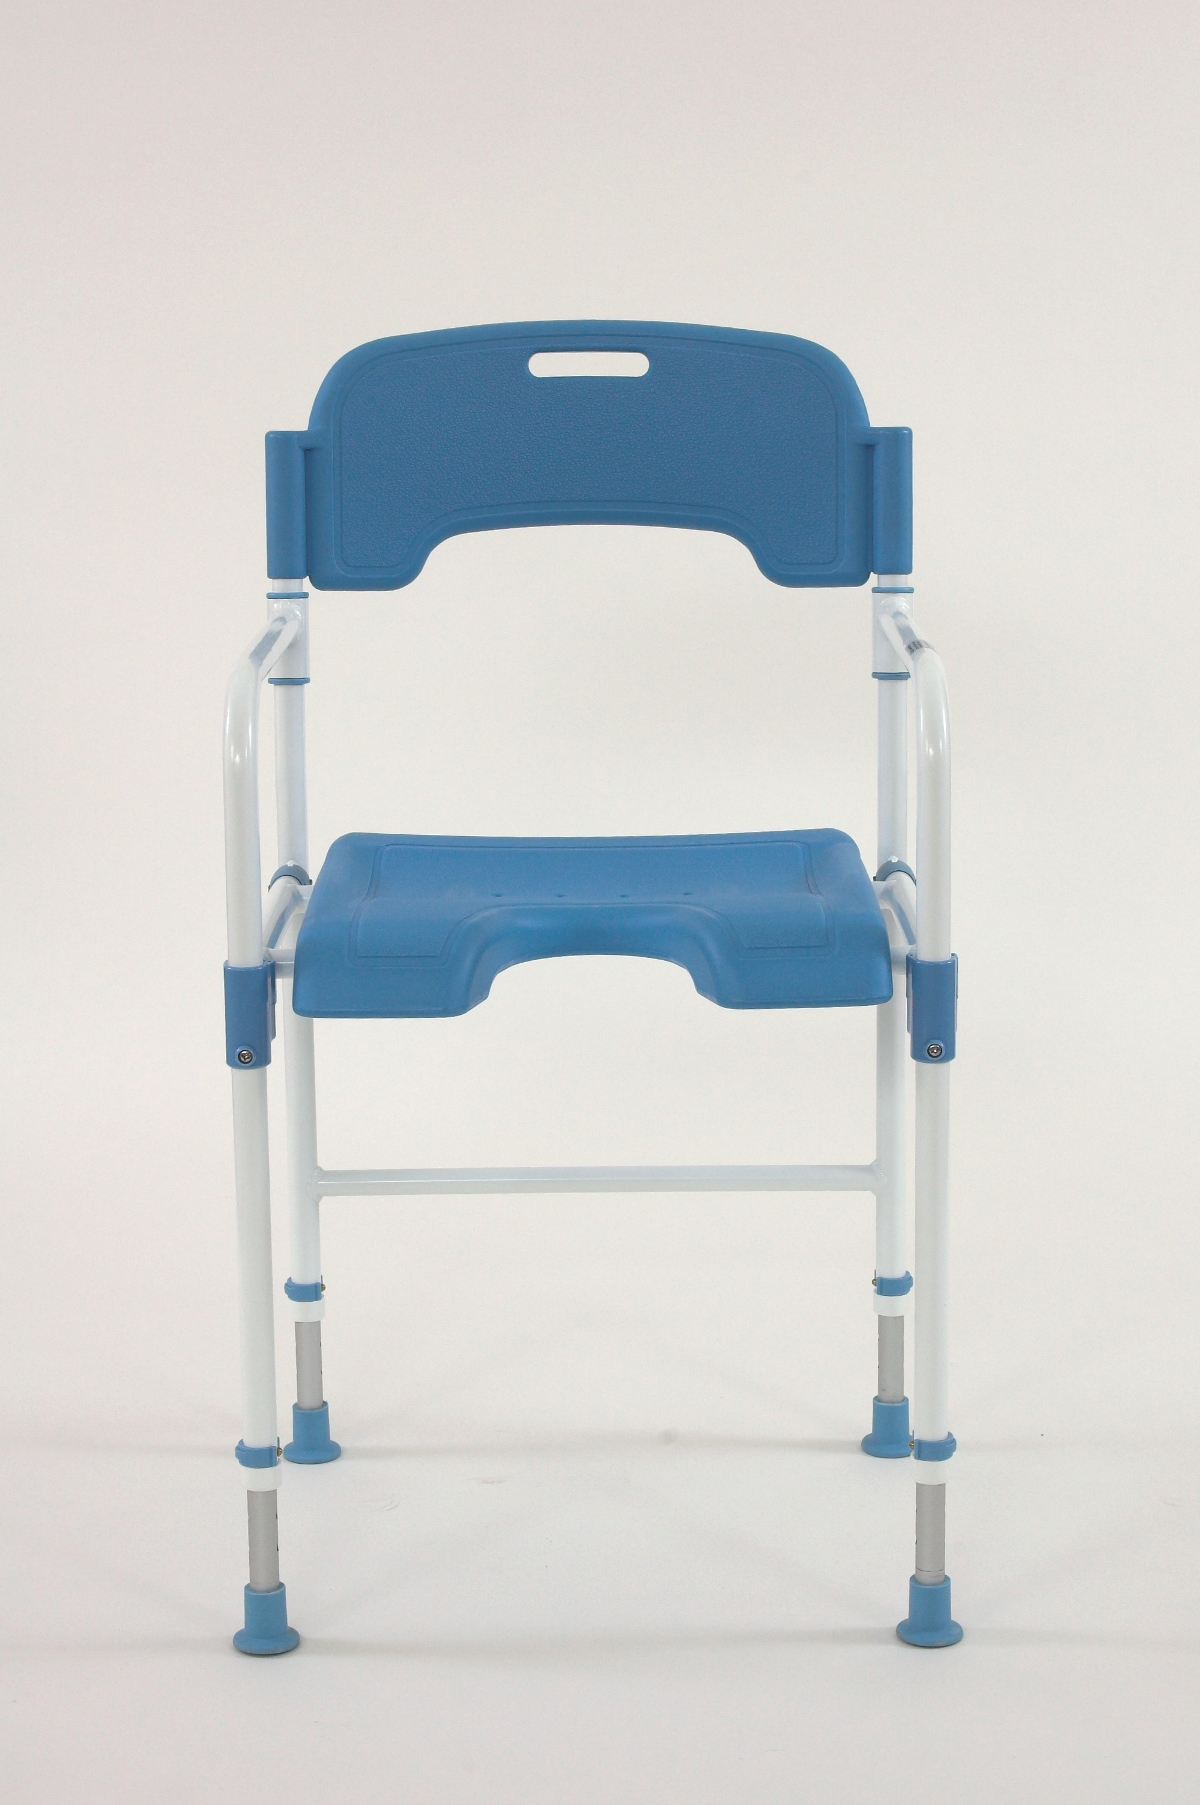 Folding Shower Chair - Living made easy